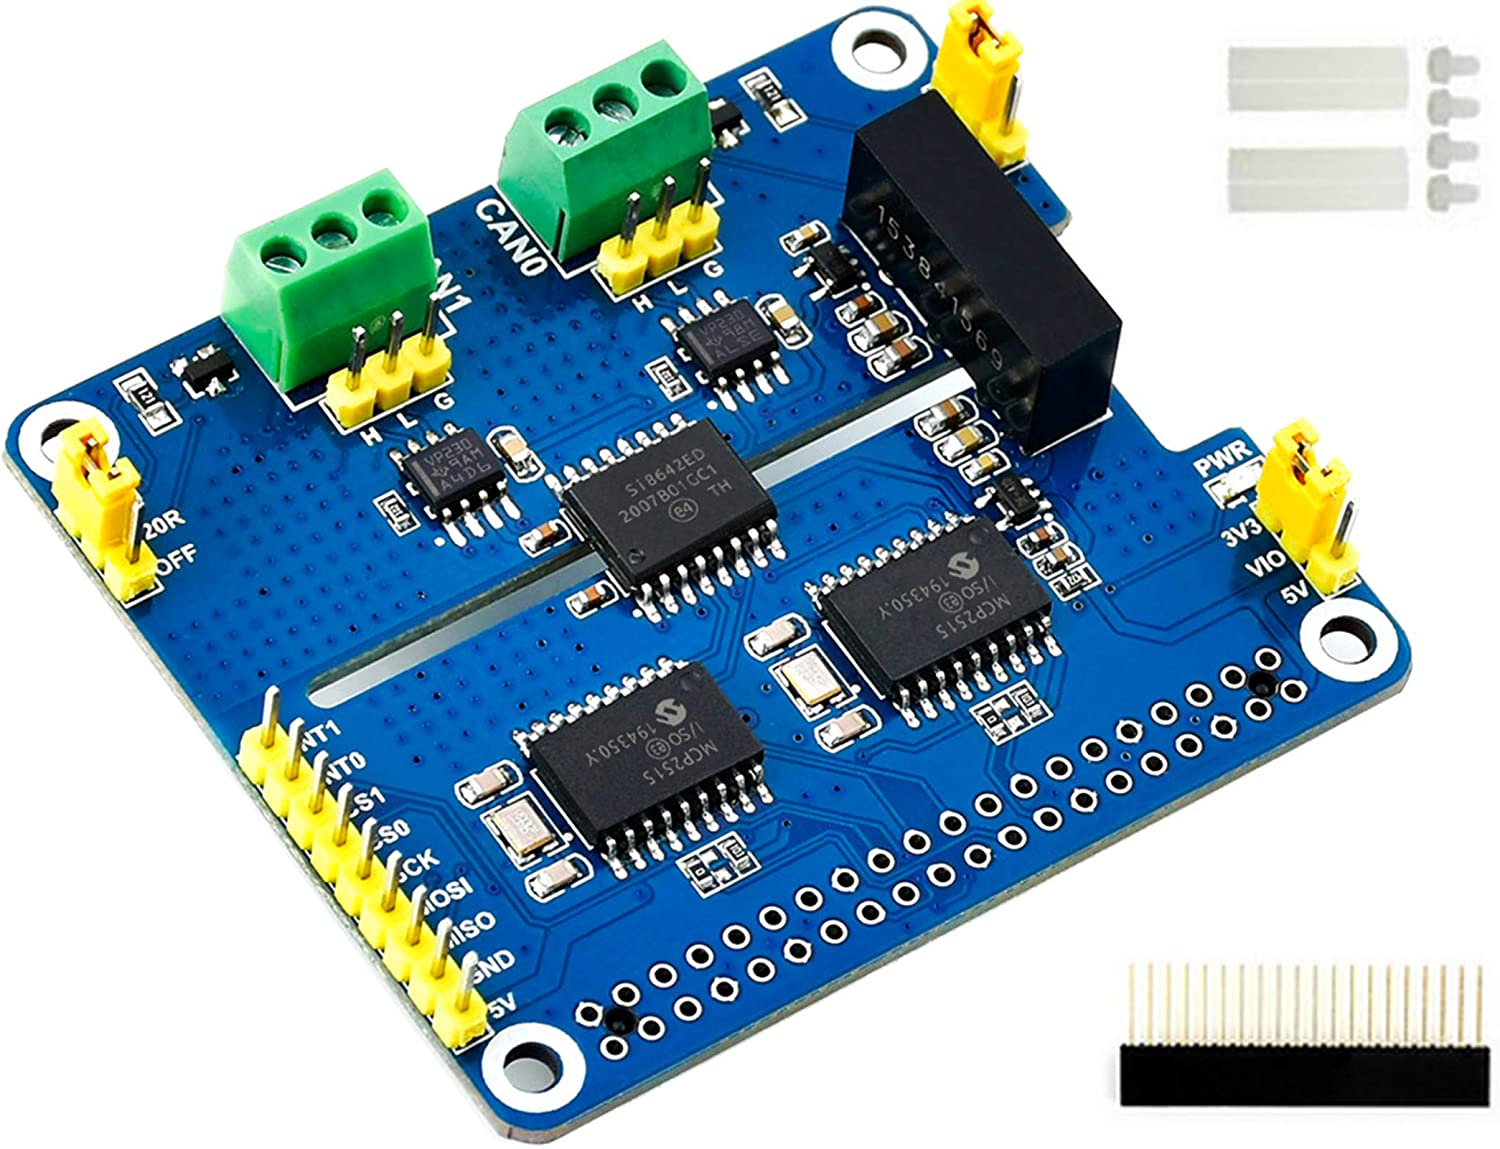 2-Channel Isolated CAN Bus Expansion HAT Pi 2021 autumn and winter new 3B+ for 4B Raspberry service